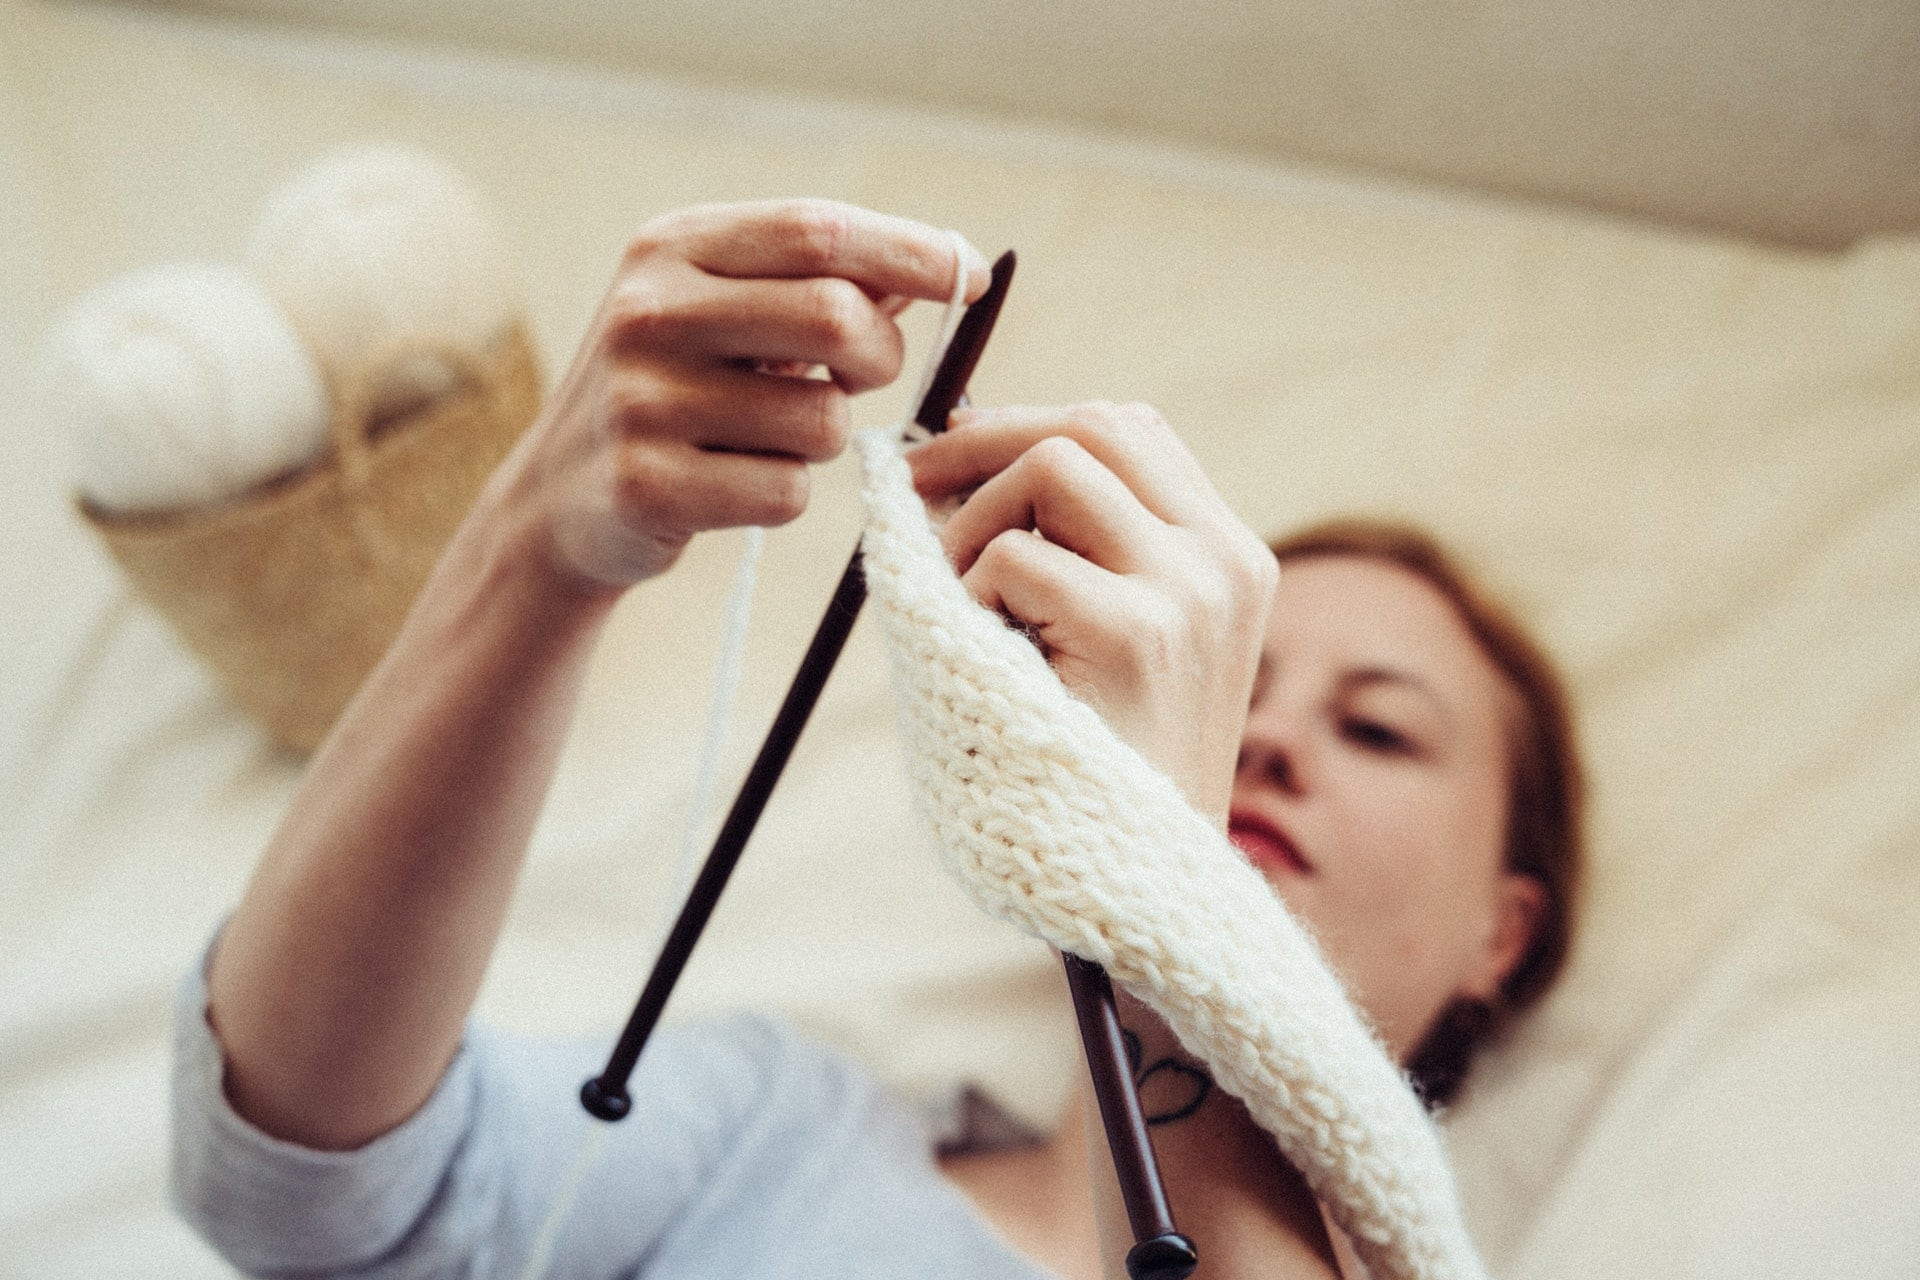 Is knitting good for the brain?